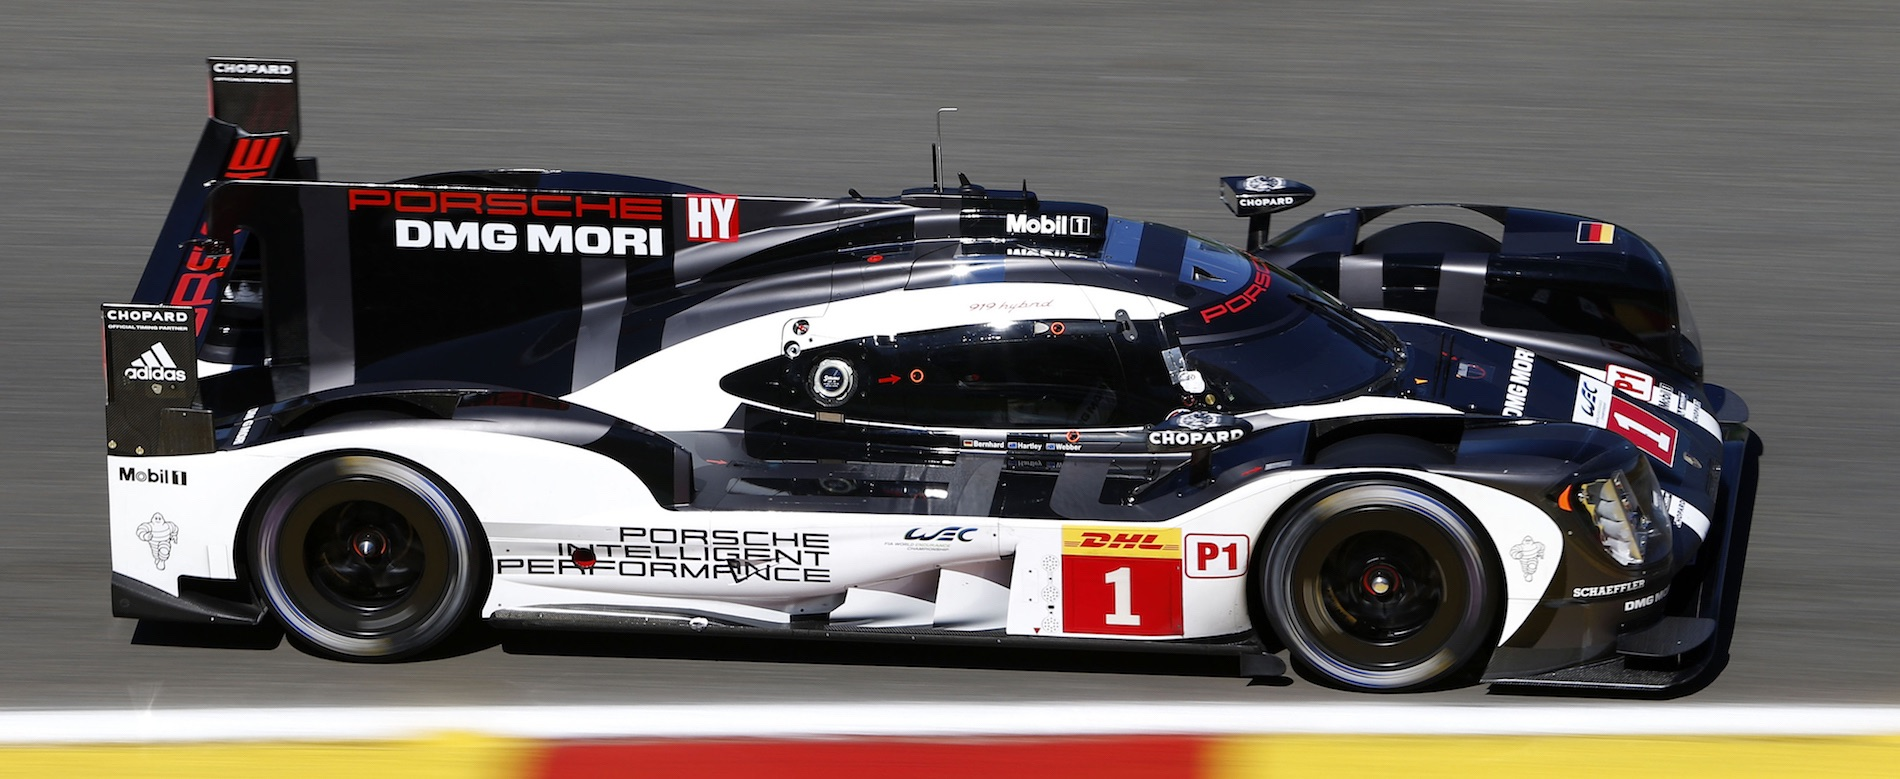 sbg sports software named official supplier to the porsche motorsport lmp1 team for le mans. Black Bedroom Furniture Sets. Home Design Ideas